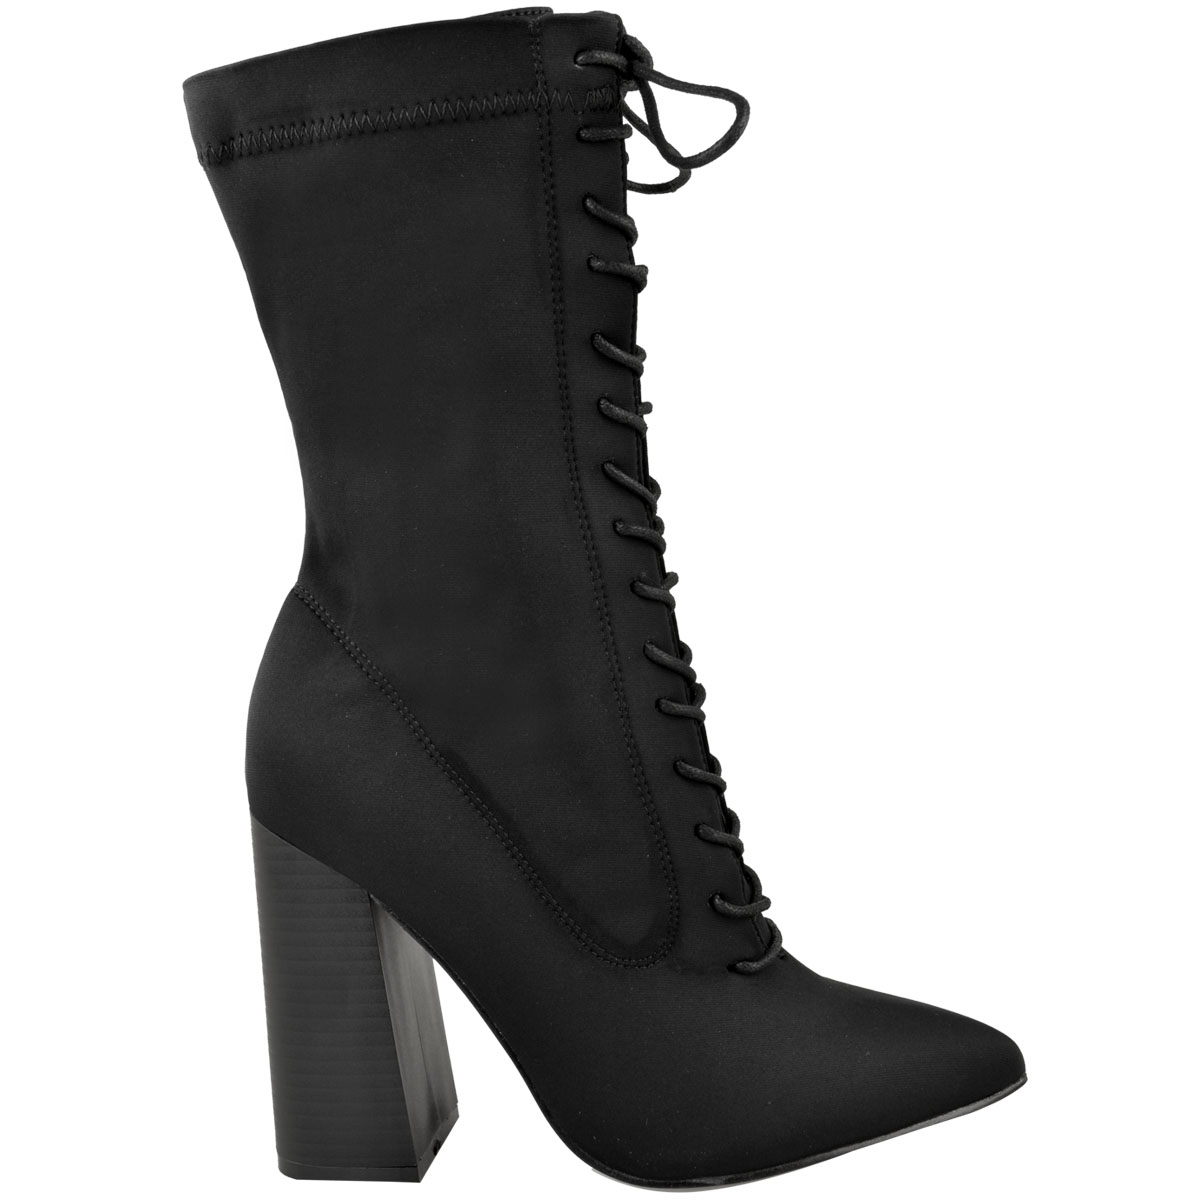 Womens-Ladies-New-Calf-Ankle-Boots-Lycra-Lace-Up-Shoes-Pointed-Toe-Stretch-Size miniatuur 3